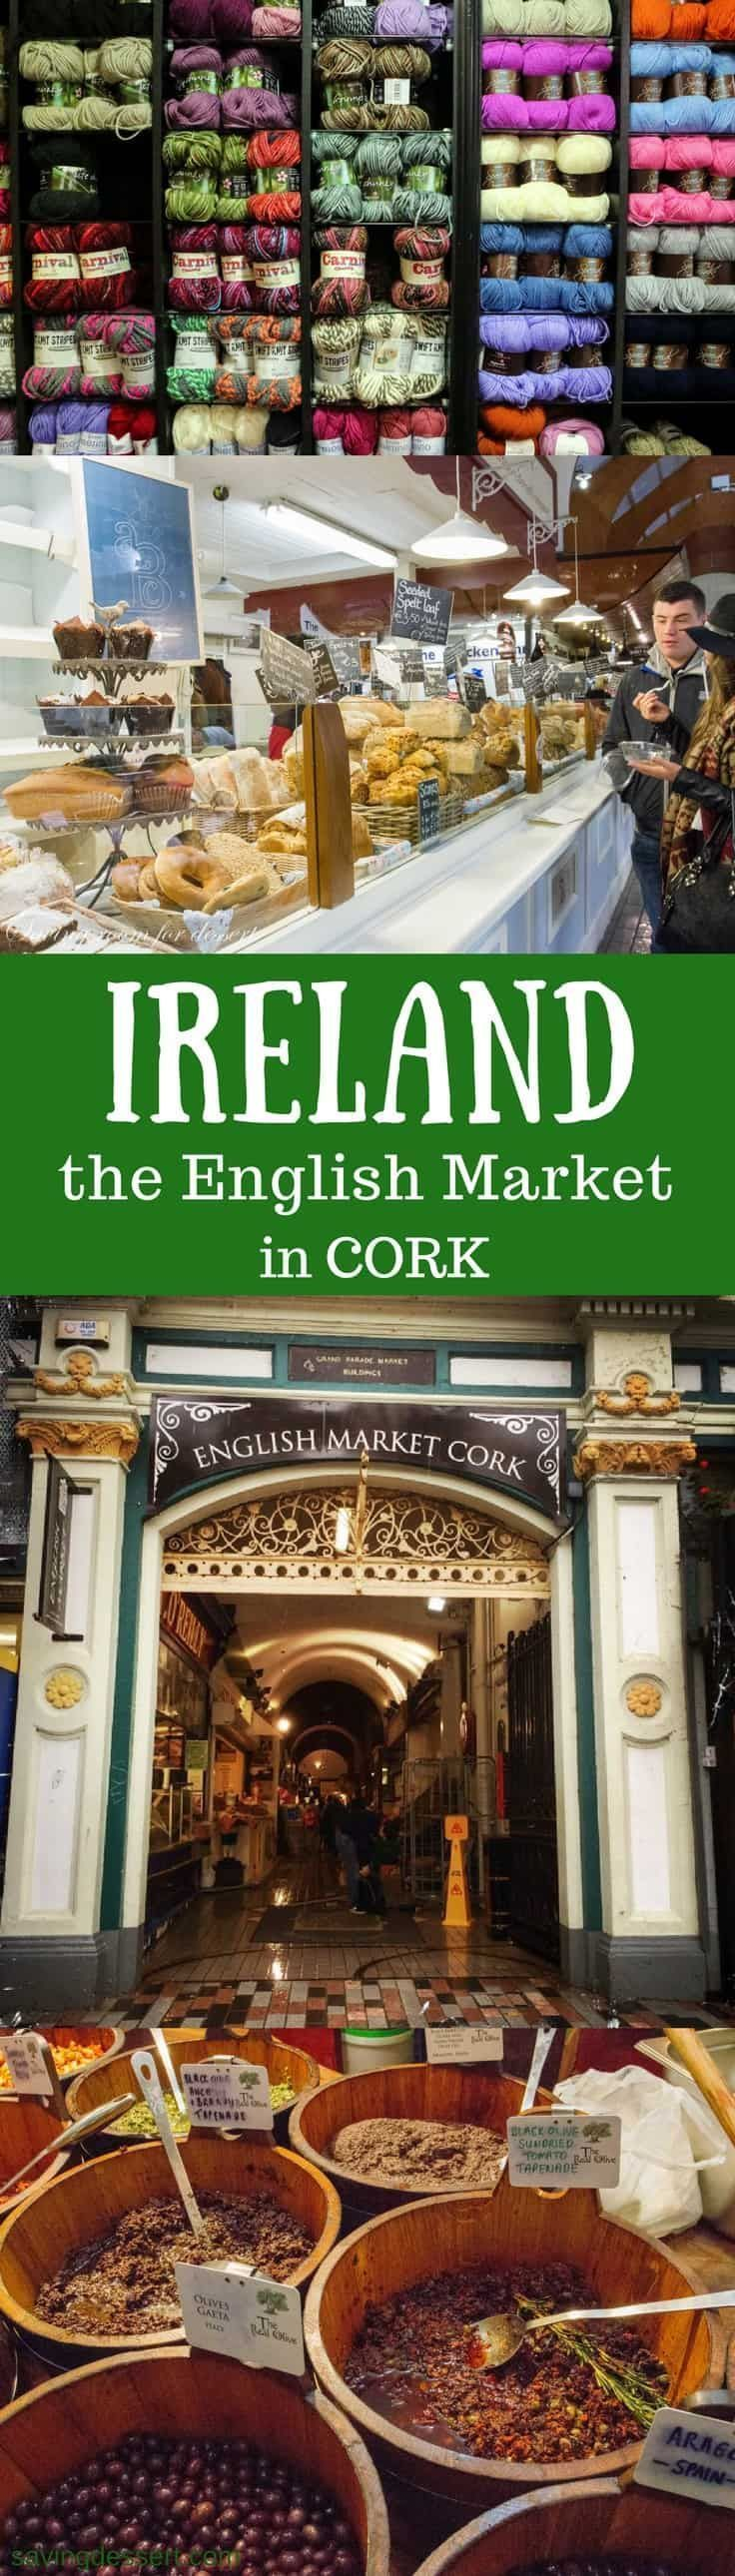 Cork Ireland - The Cork English Market has a fascinating history dating as far back as 1786. That's before the United States had it's first president! The market officially opened in August of 1788 and continues to thrive today. #savingroomfordessert #ireland #cork #theenglishmarketcork #market #travel www.savingdessert.com #irelandtravel